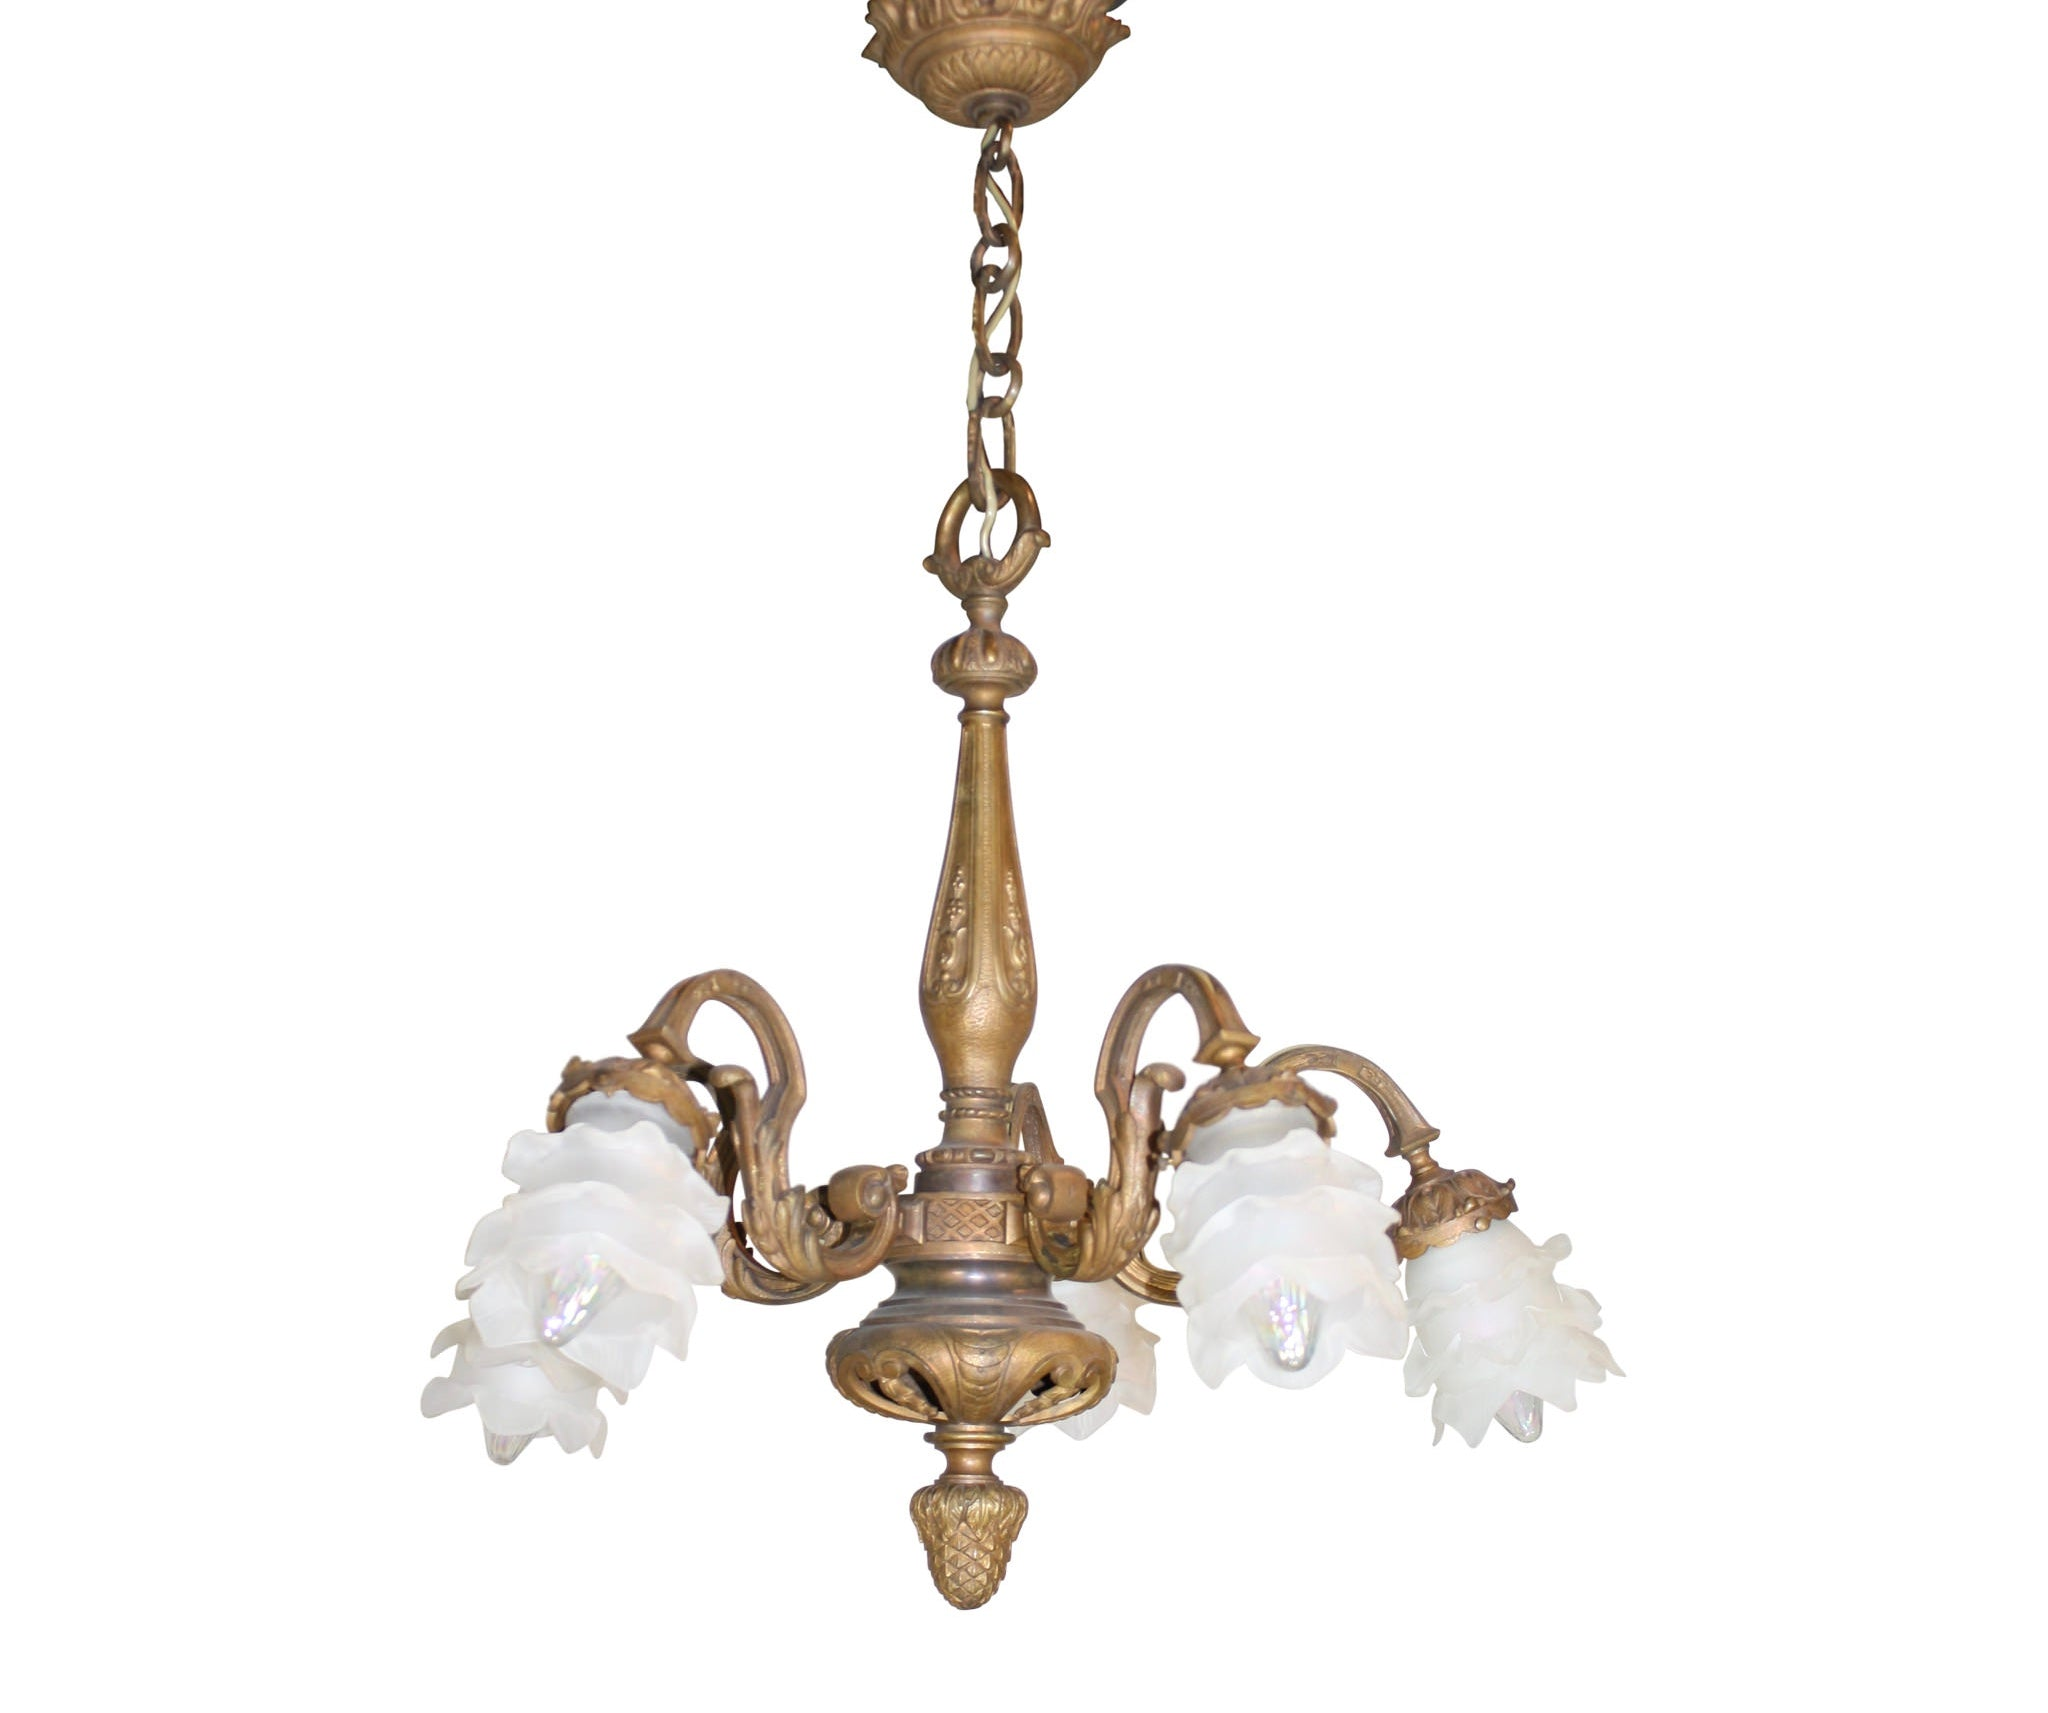 Five Arm Chandelier with Glass Shades